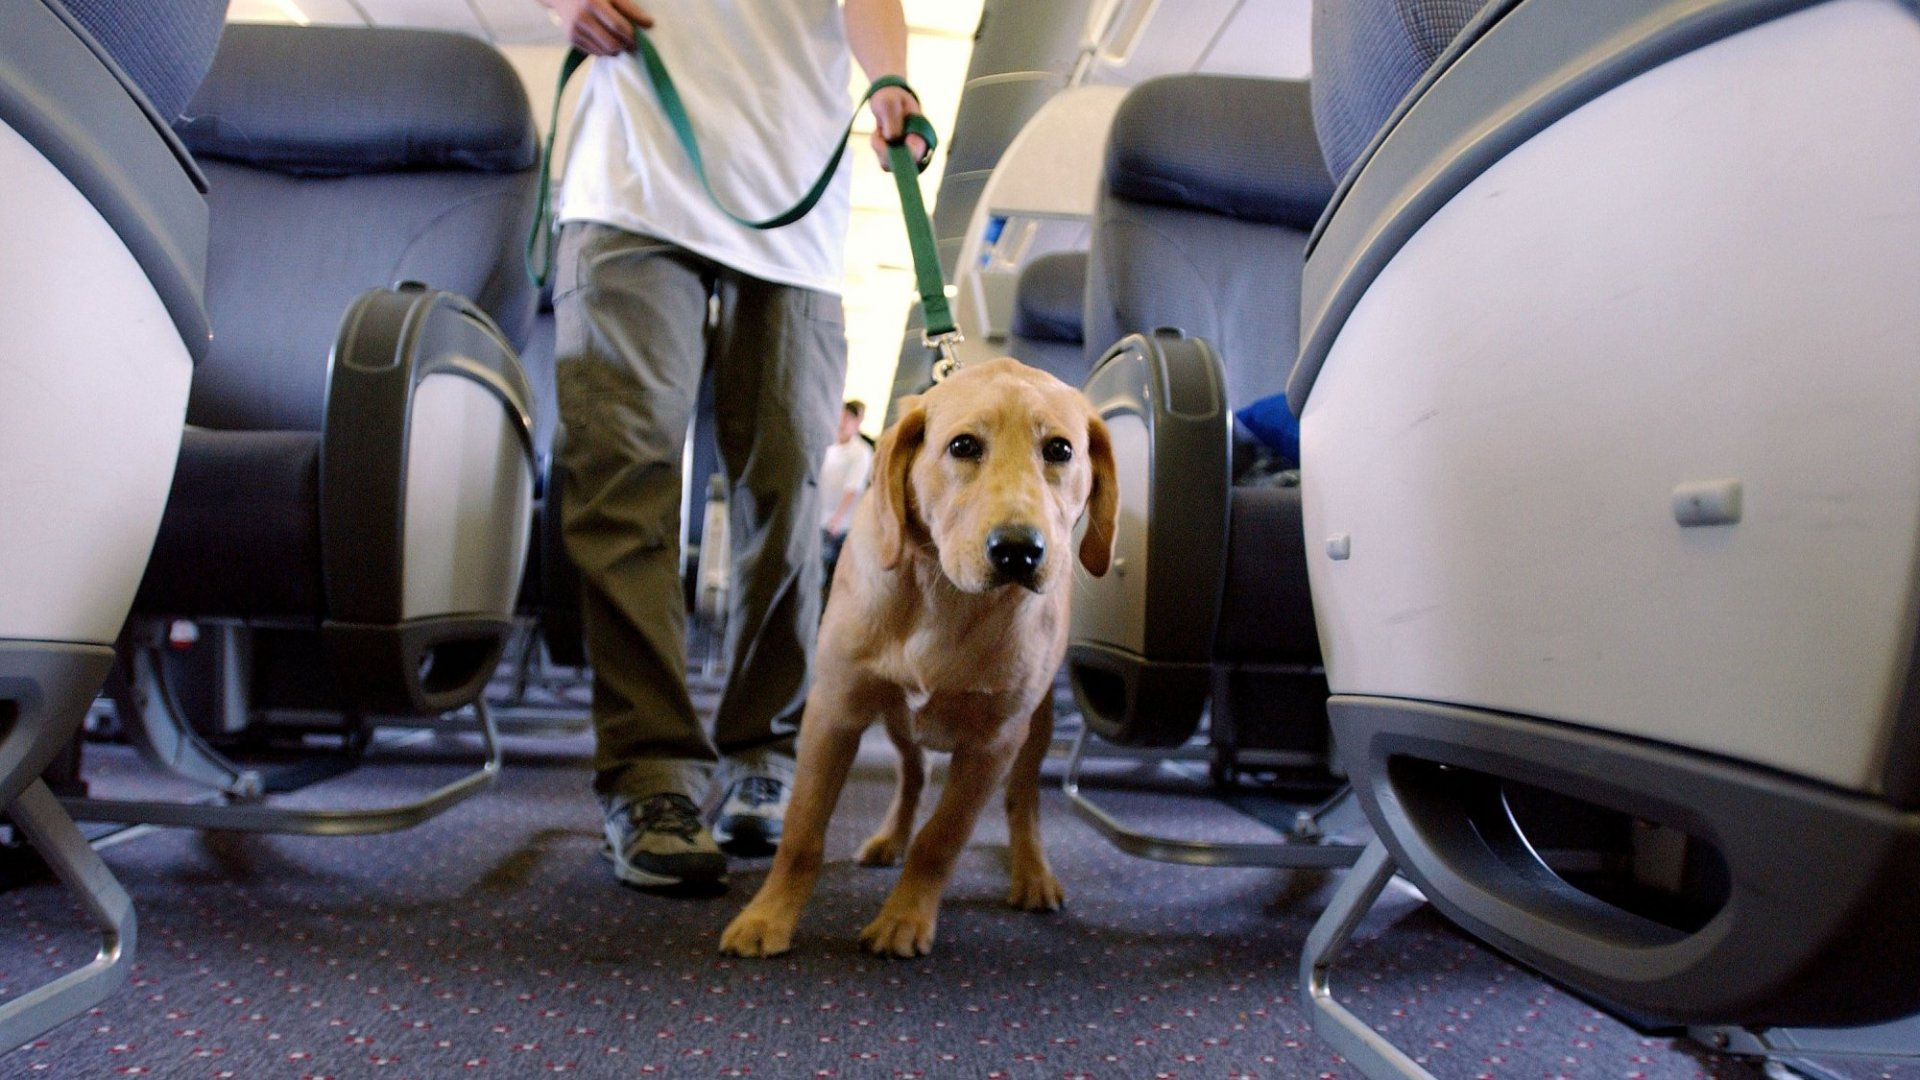 Many dogs are well-behaved, especially service dogs. But how are airlines to know which dog might cause a problem?